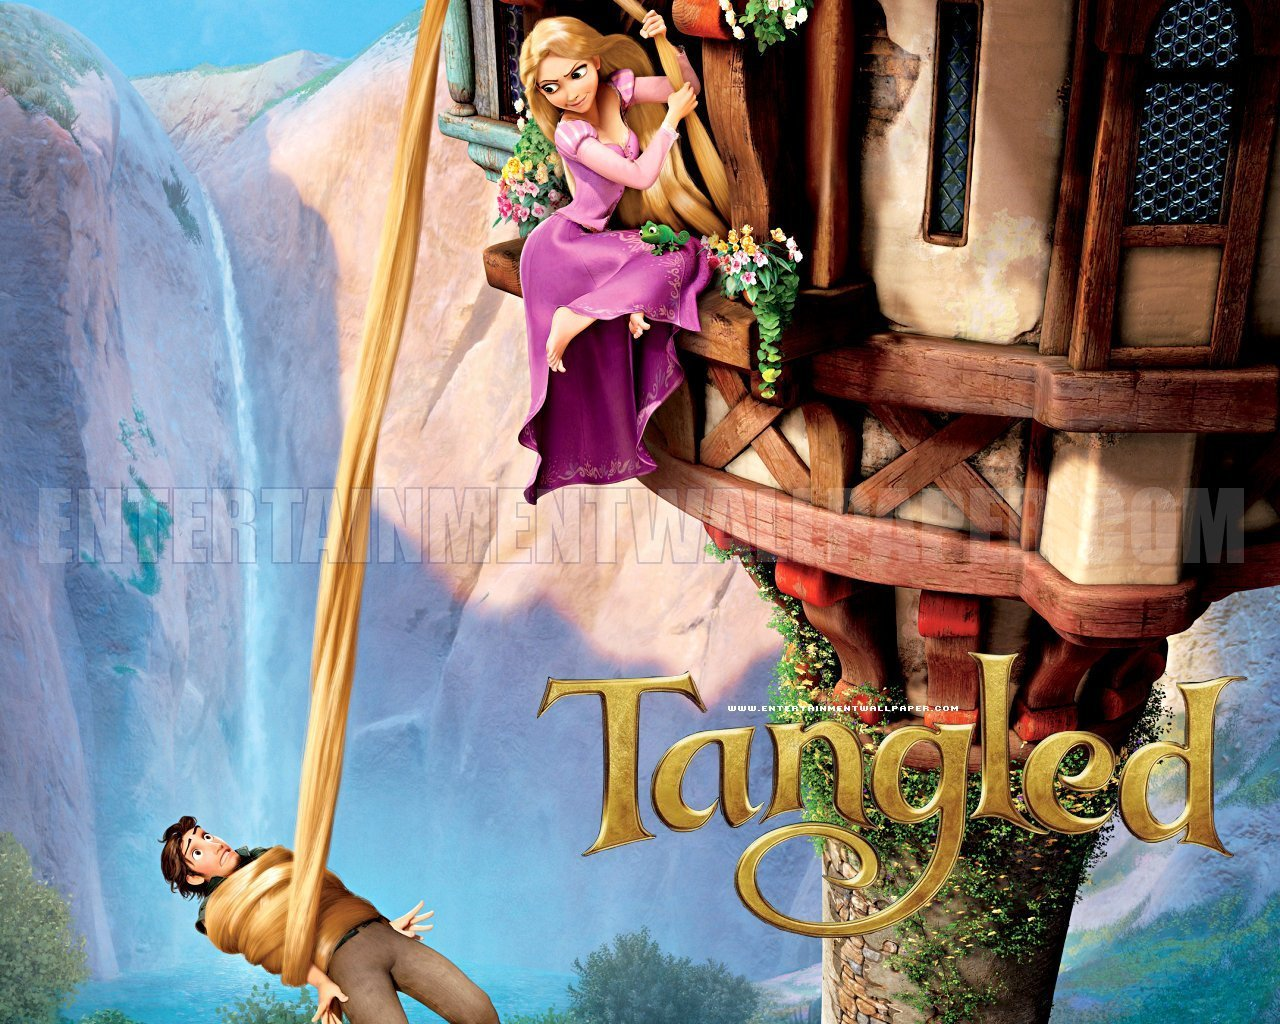 Tangled Disney Wallpaper   Princess Rapunzel from Tangled 1280x1024